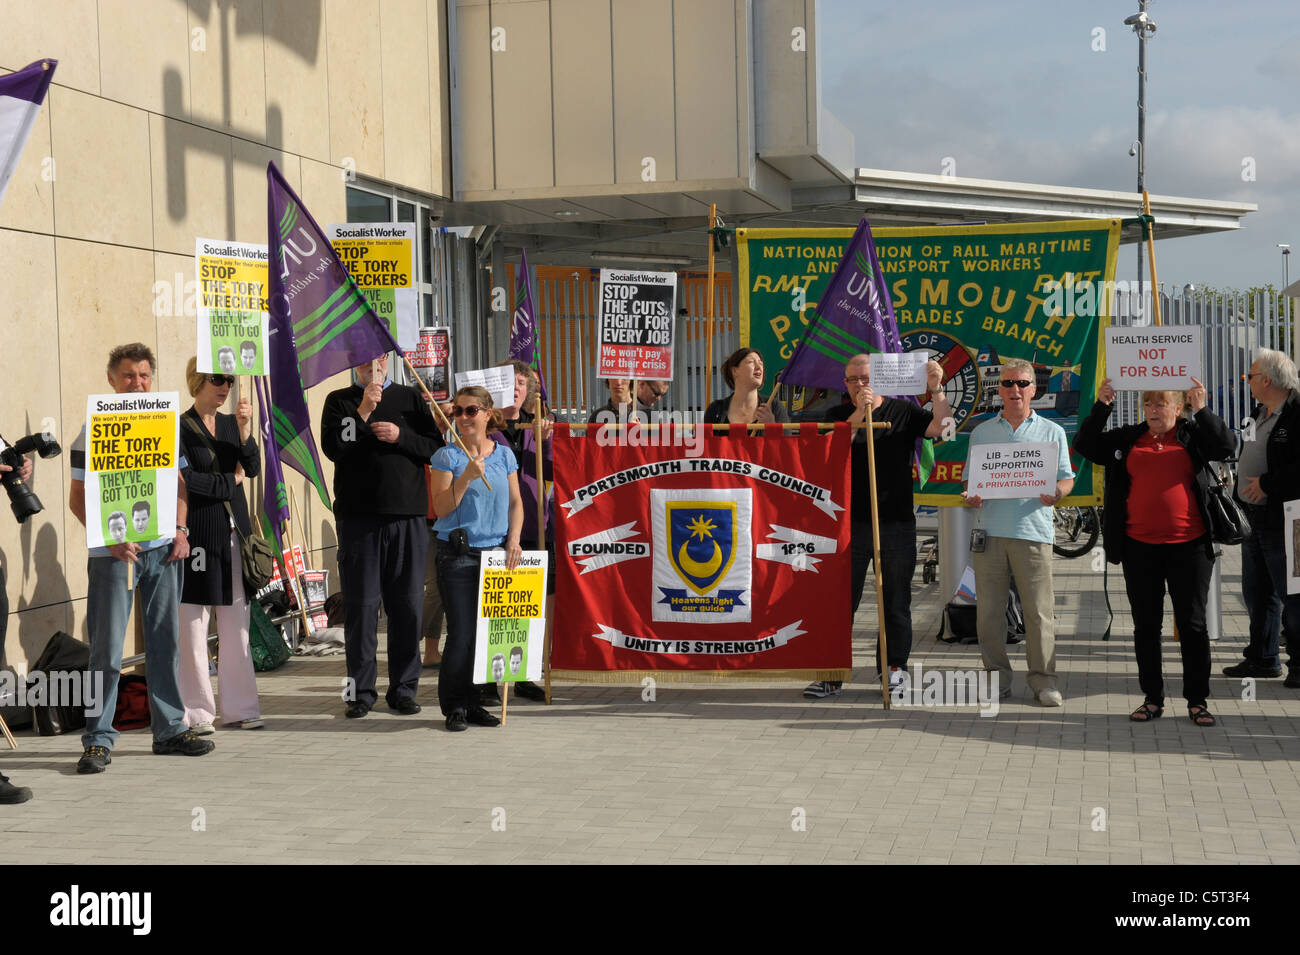 Trade Union protesters demonstrating against job cuts - Portsmouth, England - Stock Image